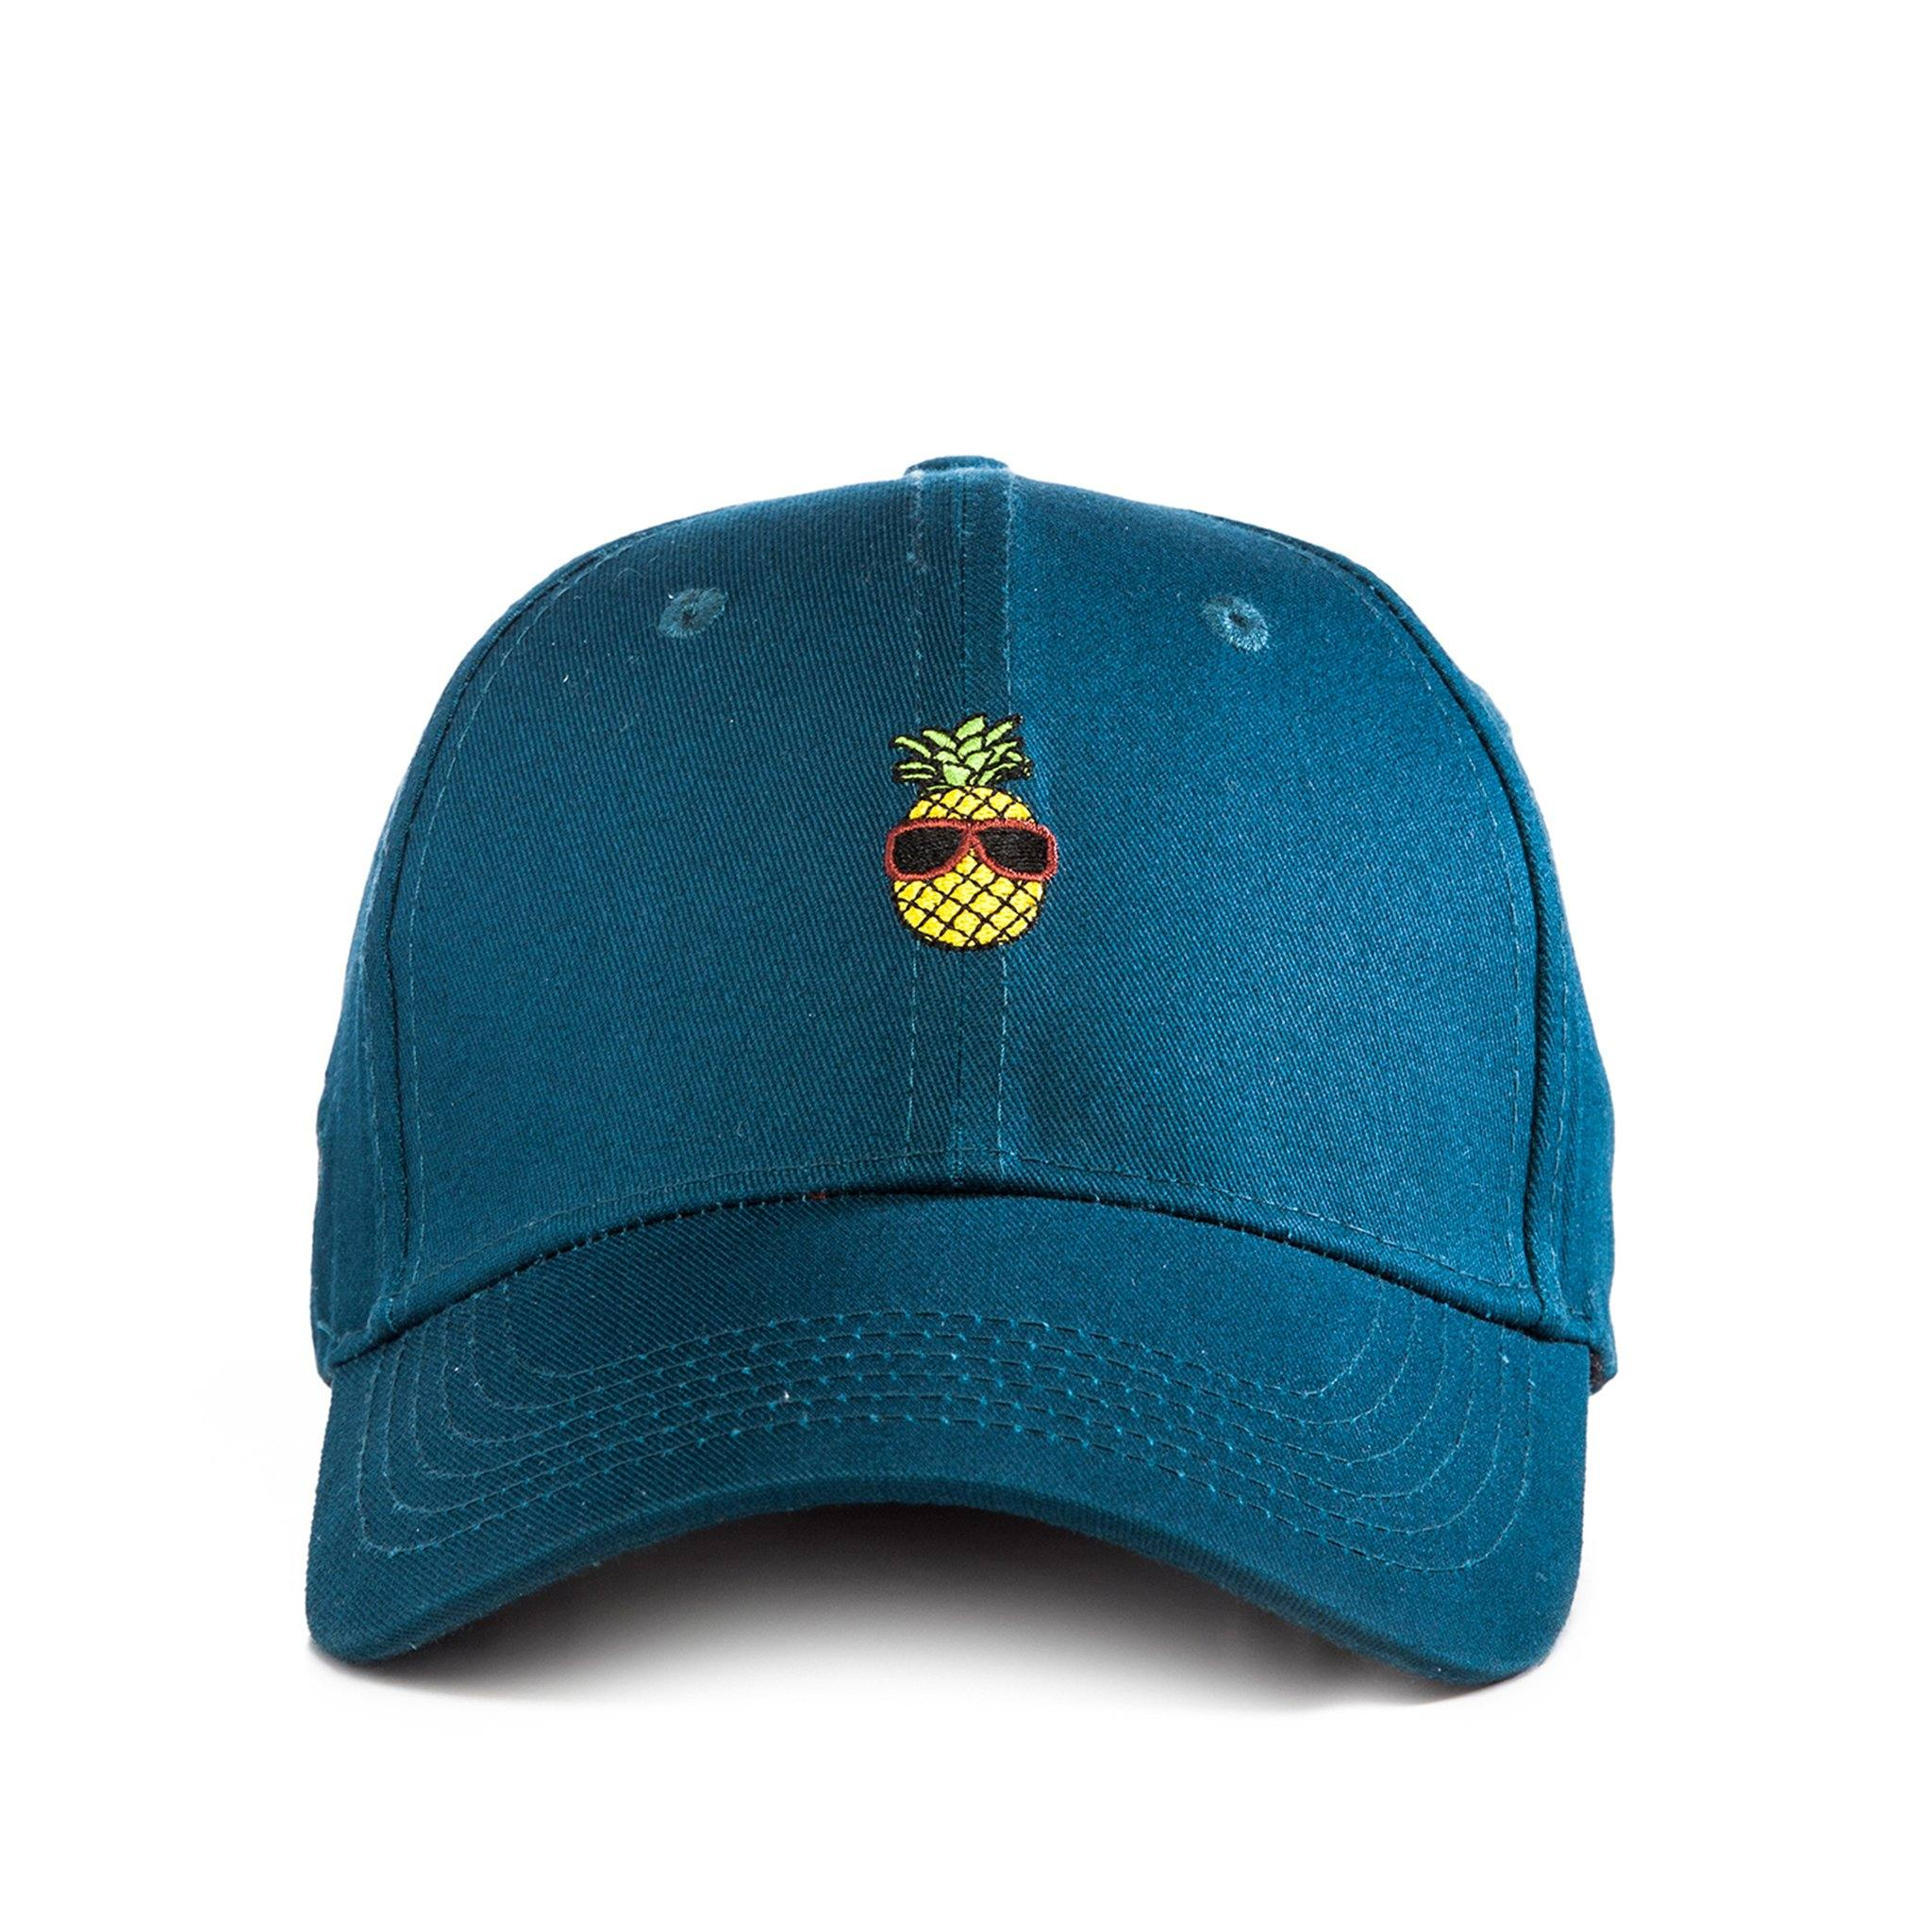 Cool Pineapple - Teal Baseball Cap